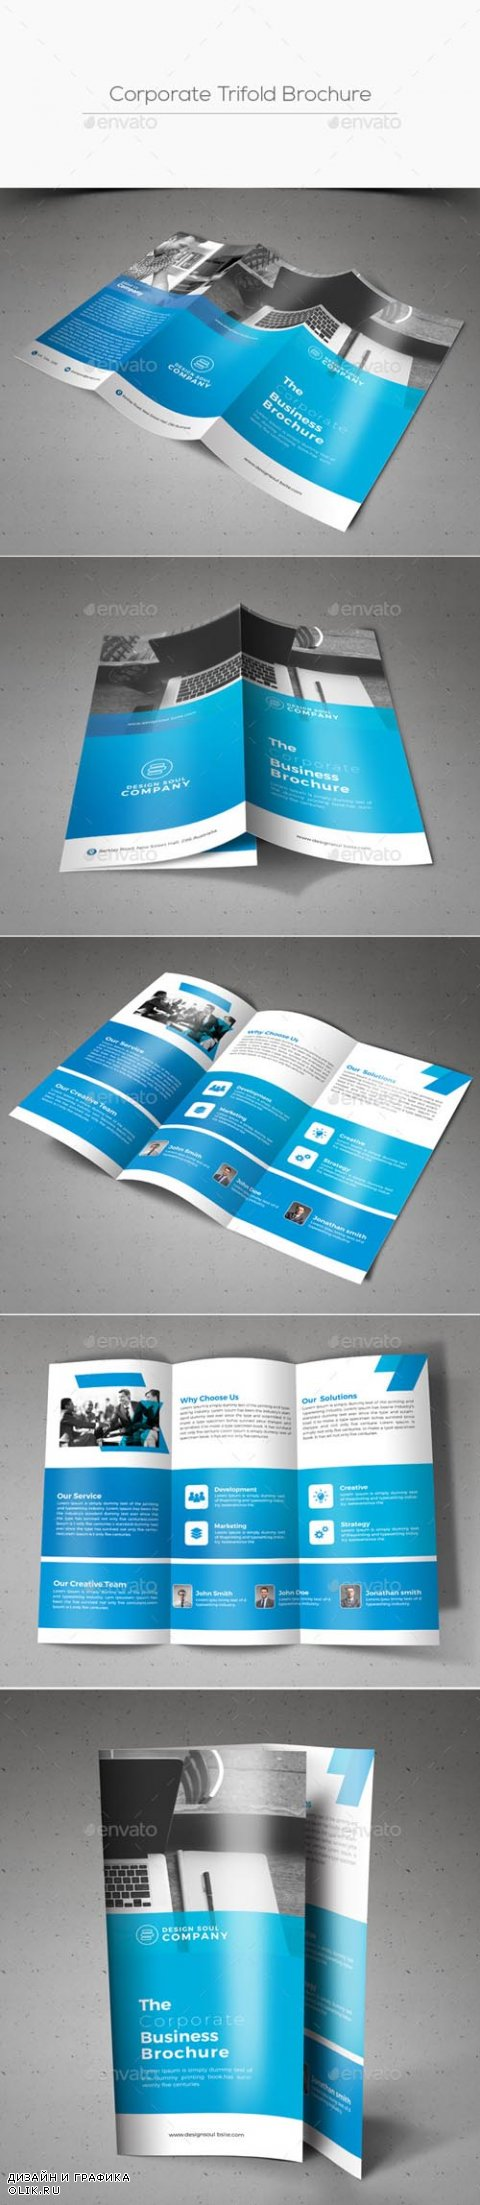 Corporate Trifold Brochure 18948418